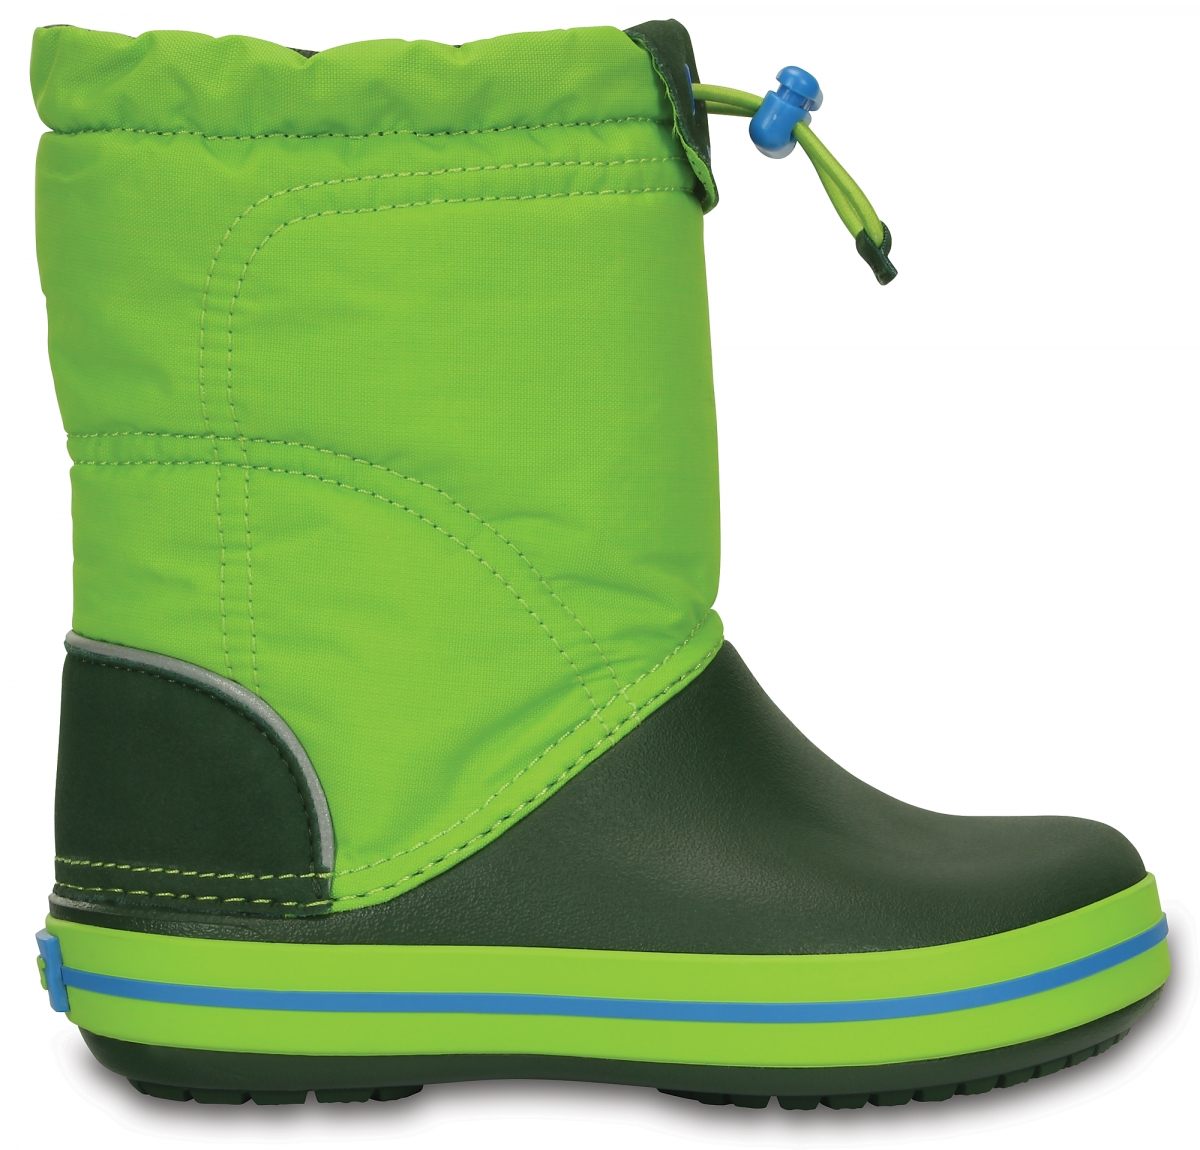 Crocs Crocband LodgePoint Boot Kids - Lime/Forest Green, C10 (27-28)